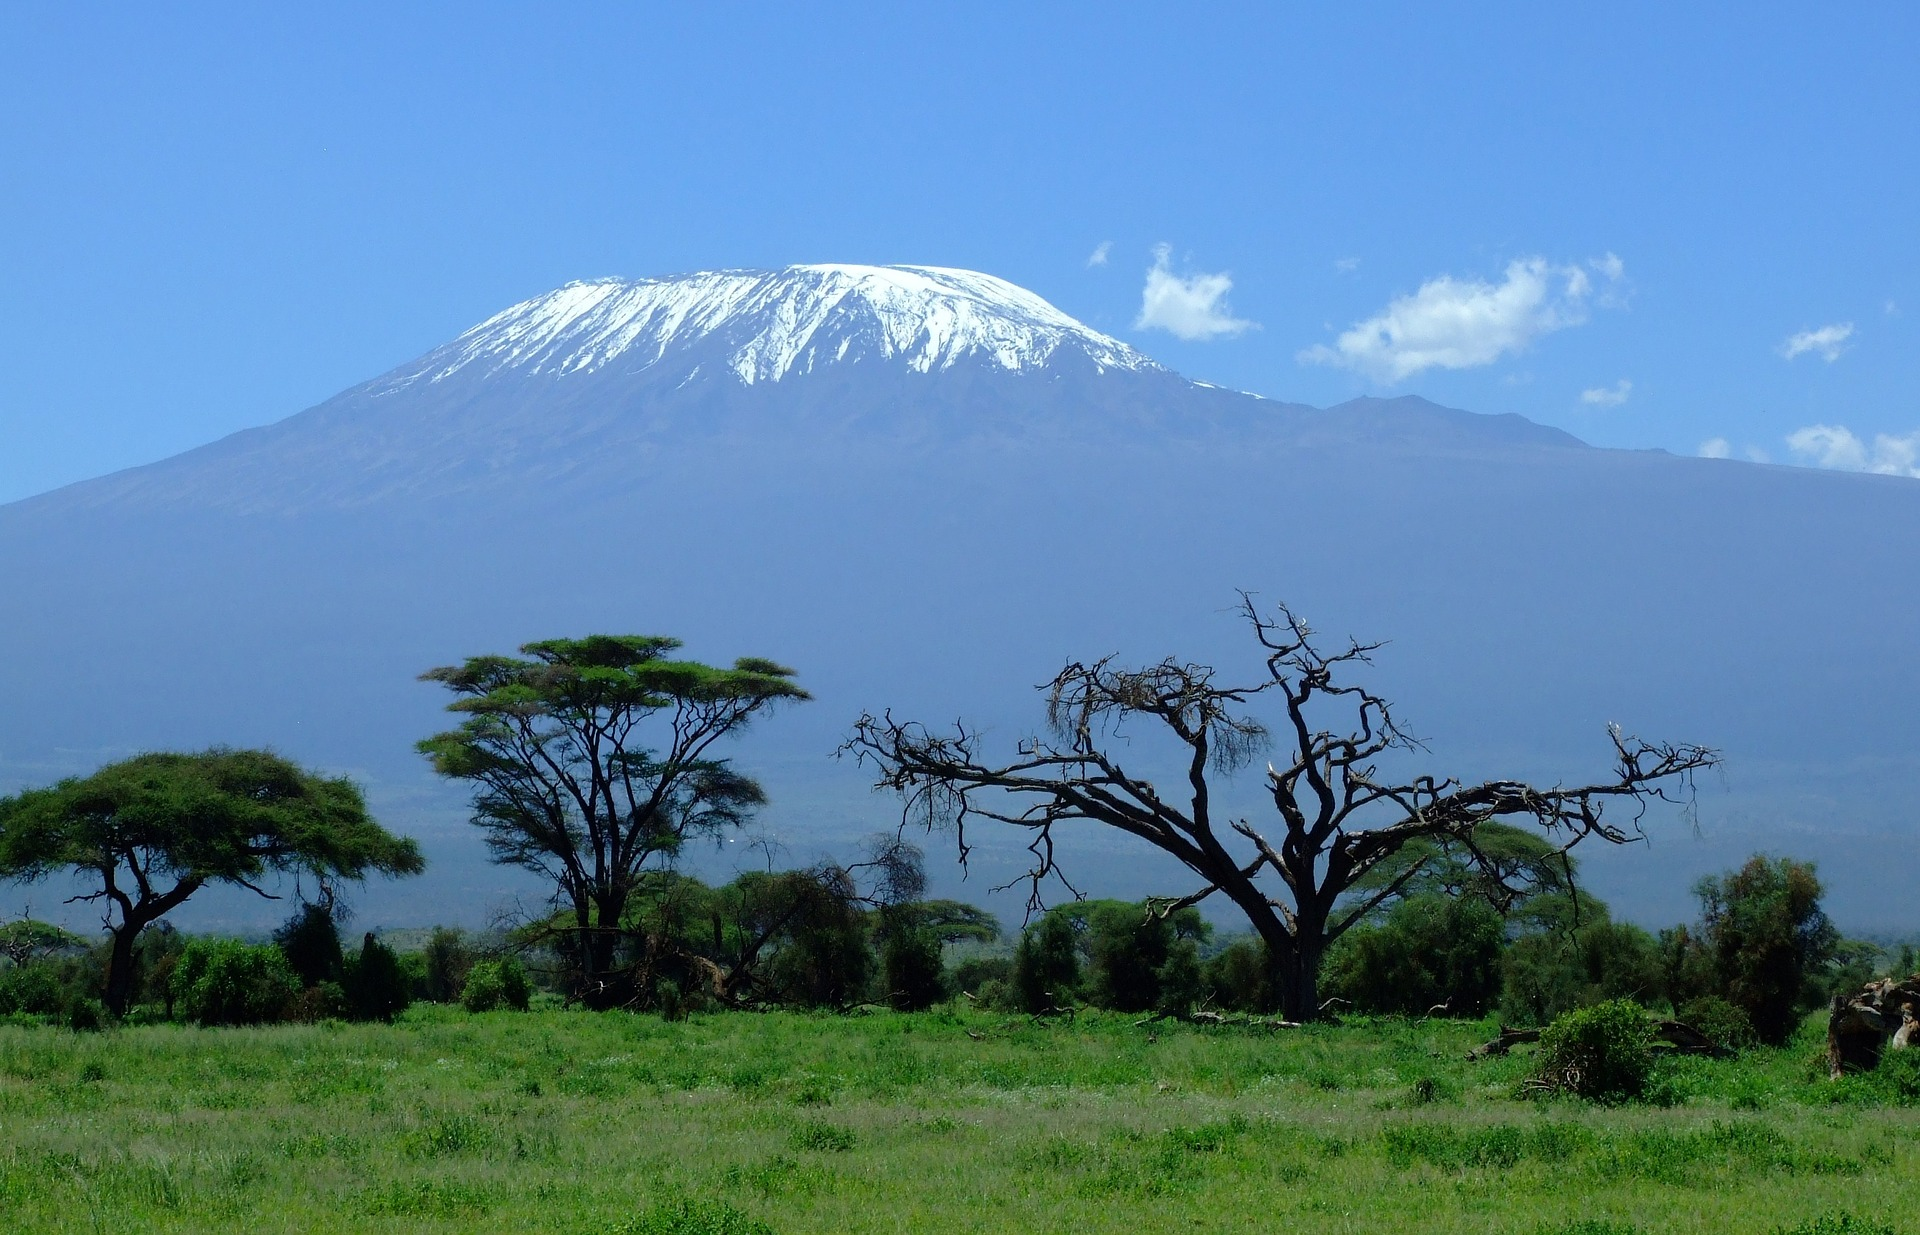 Five Ways to Make Sure You Have the Best Tanzania Vacation Ever